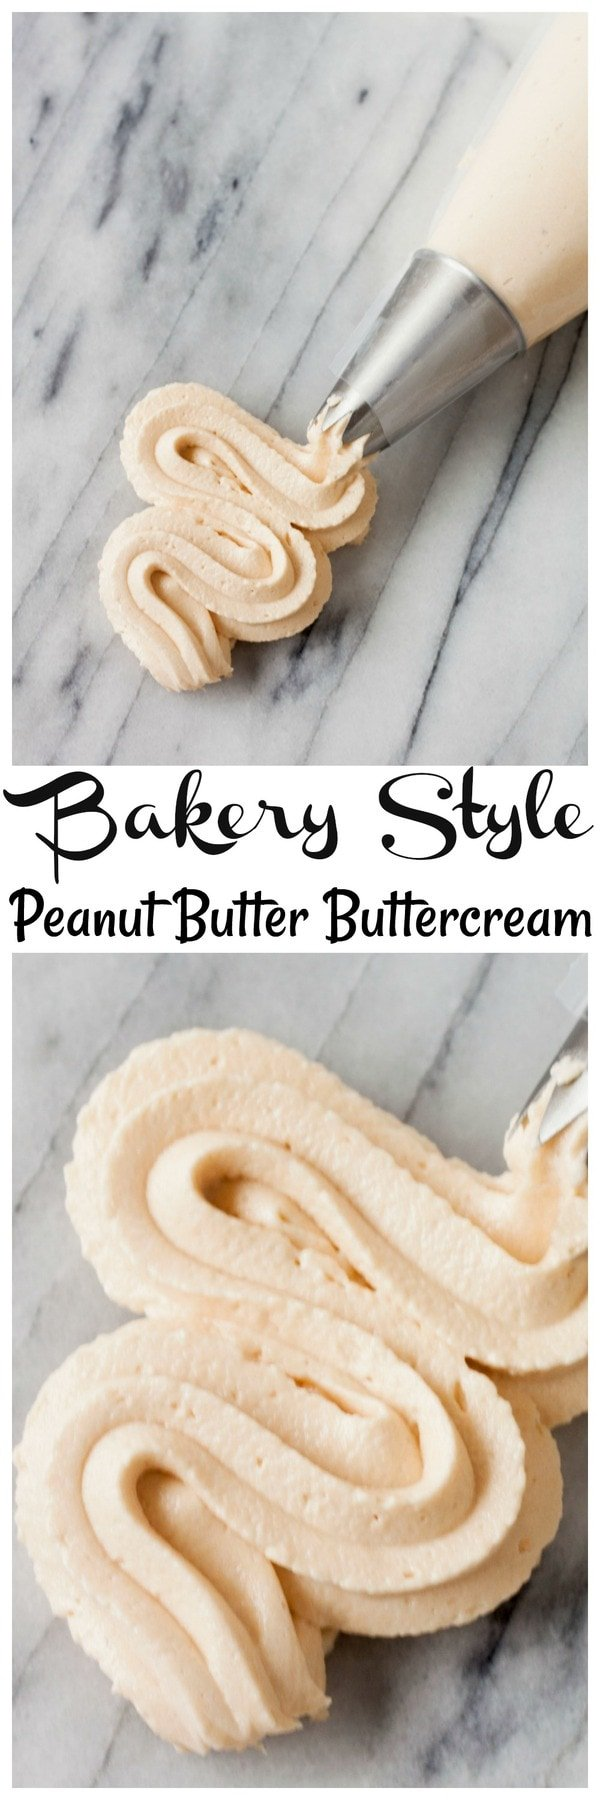 Easy to make Bakery Style Peanut BUtter Buttercream Frosting, never buy store bought frosting again with this homemade Bakery Style Peanut BUtter Buttercream Frosting. Homemade Bakery Style Peanut BUtter Buttercream Frosting is perfect for making cakes. Bakery Style Peanut BUtter Buttercream Frosting tastes just like a bakery!